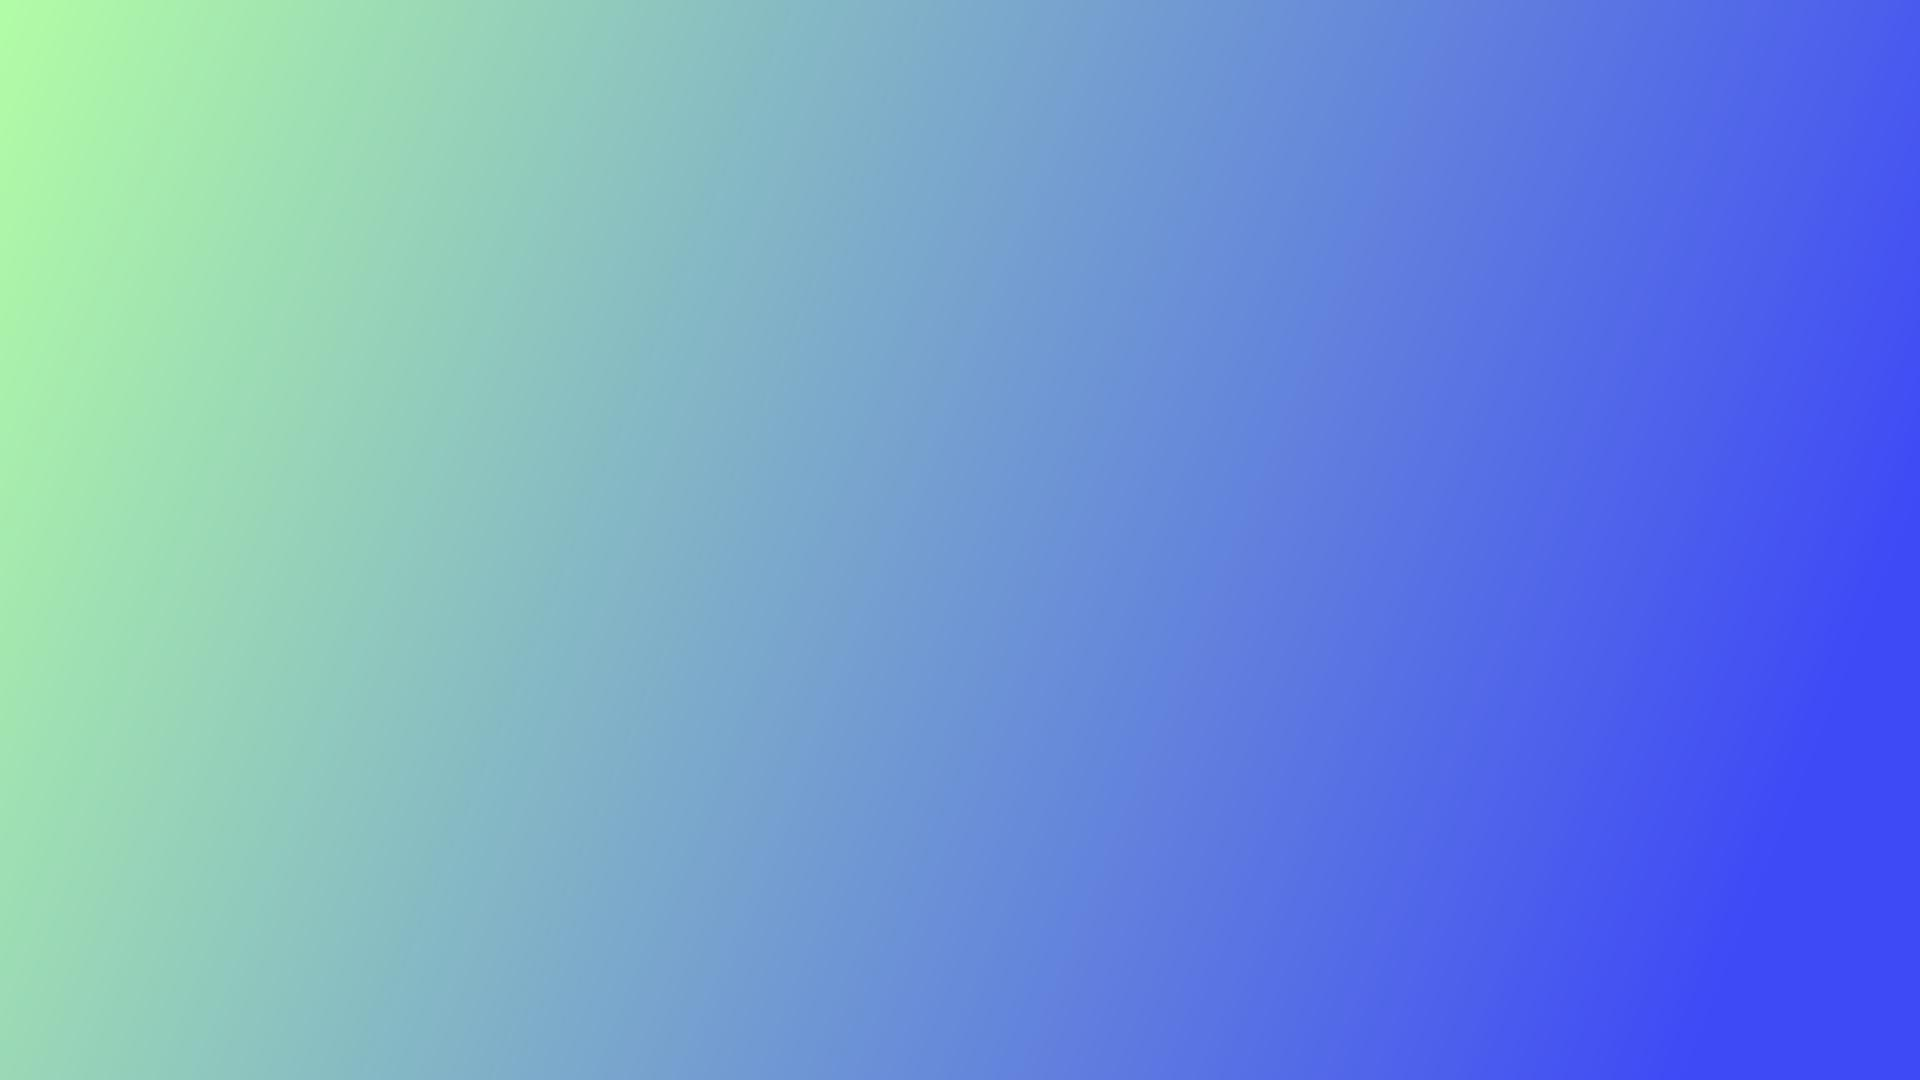 Green to blue Gradient